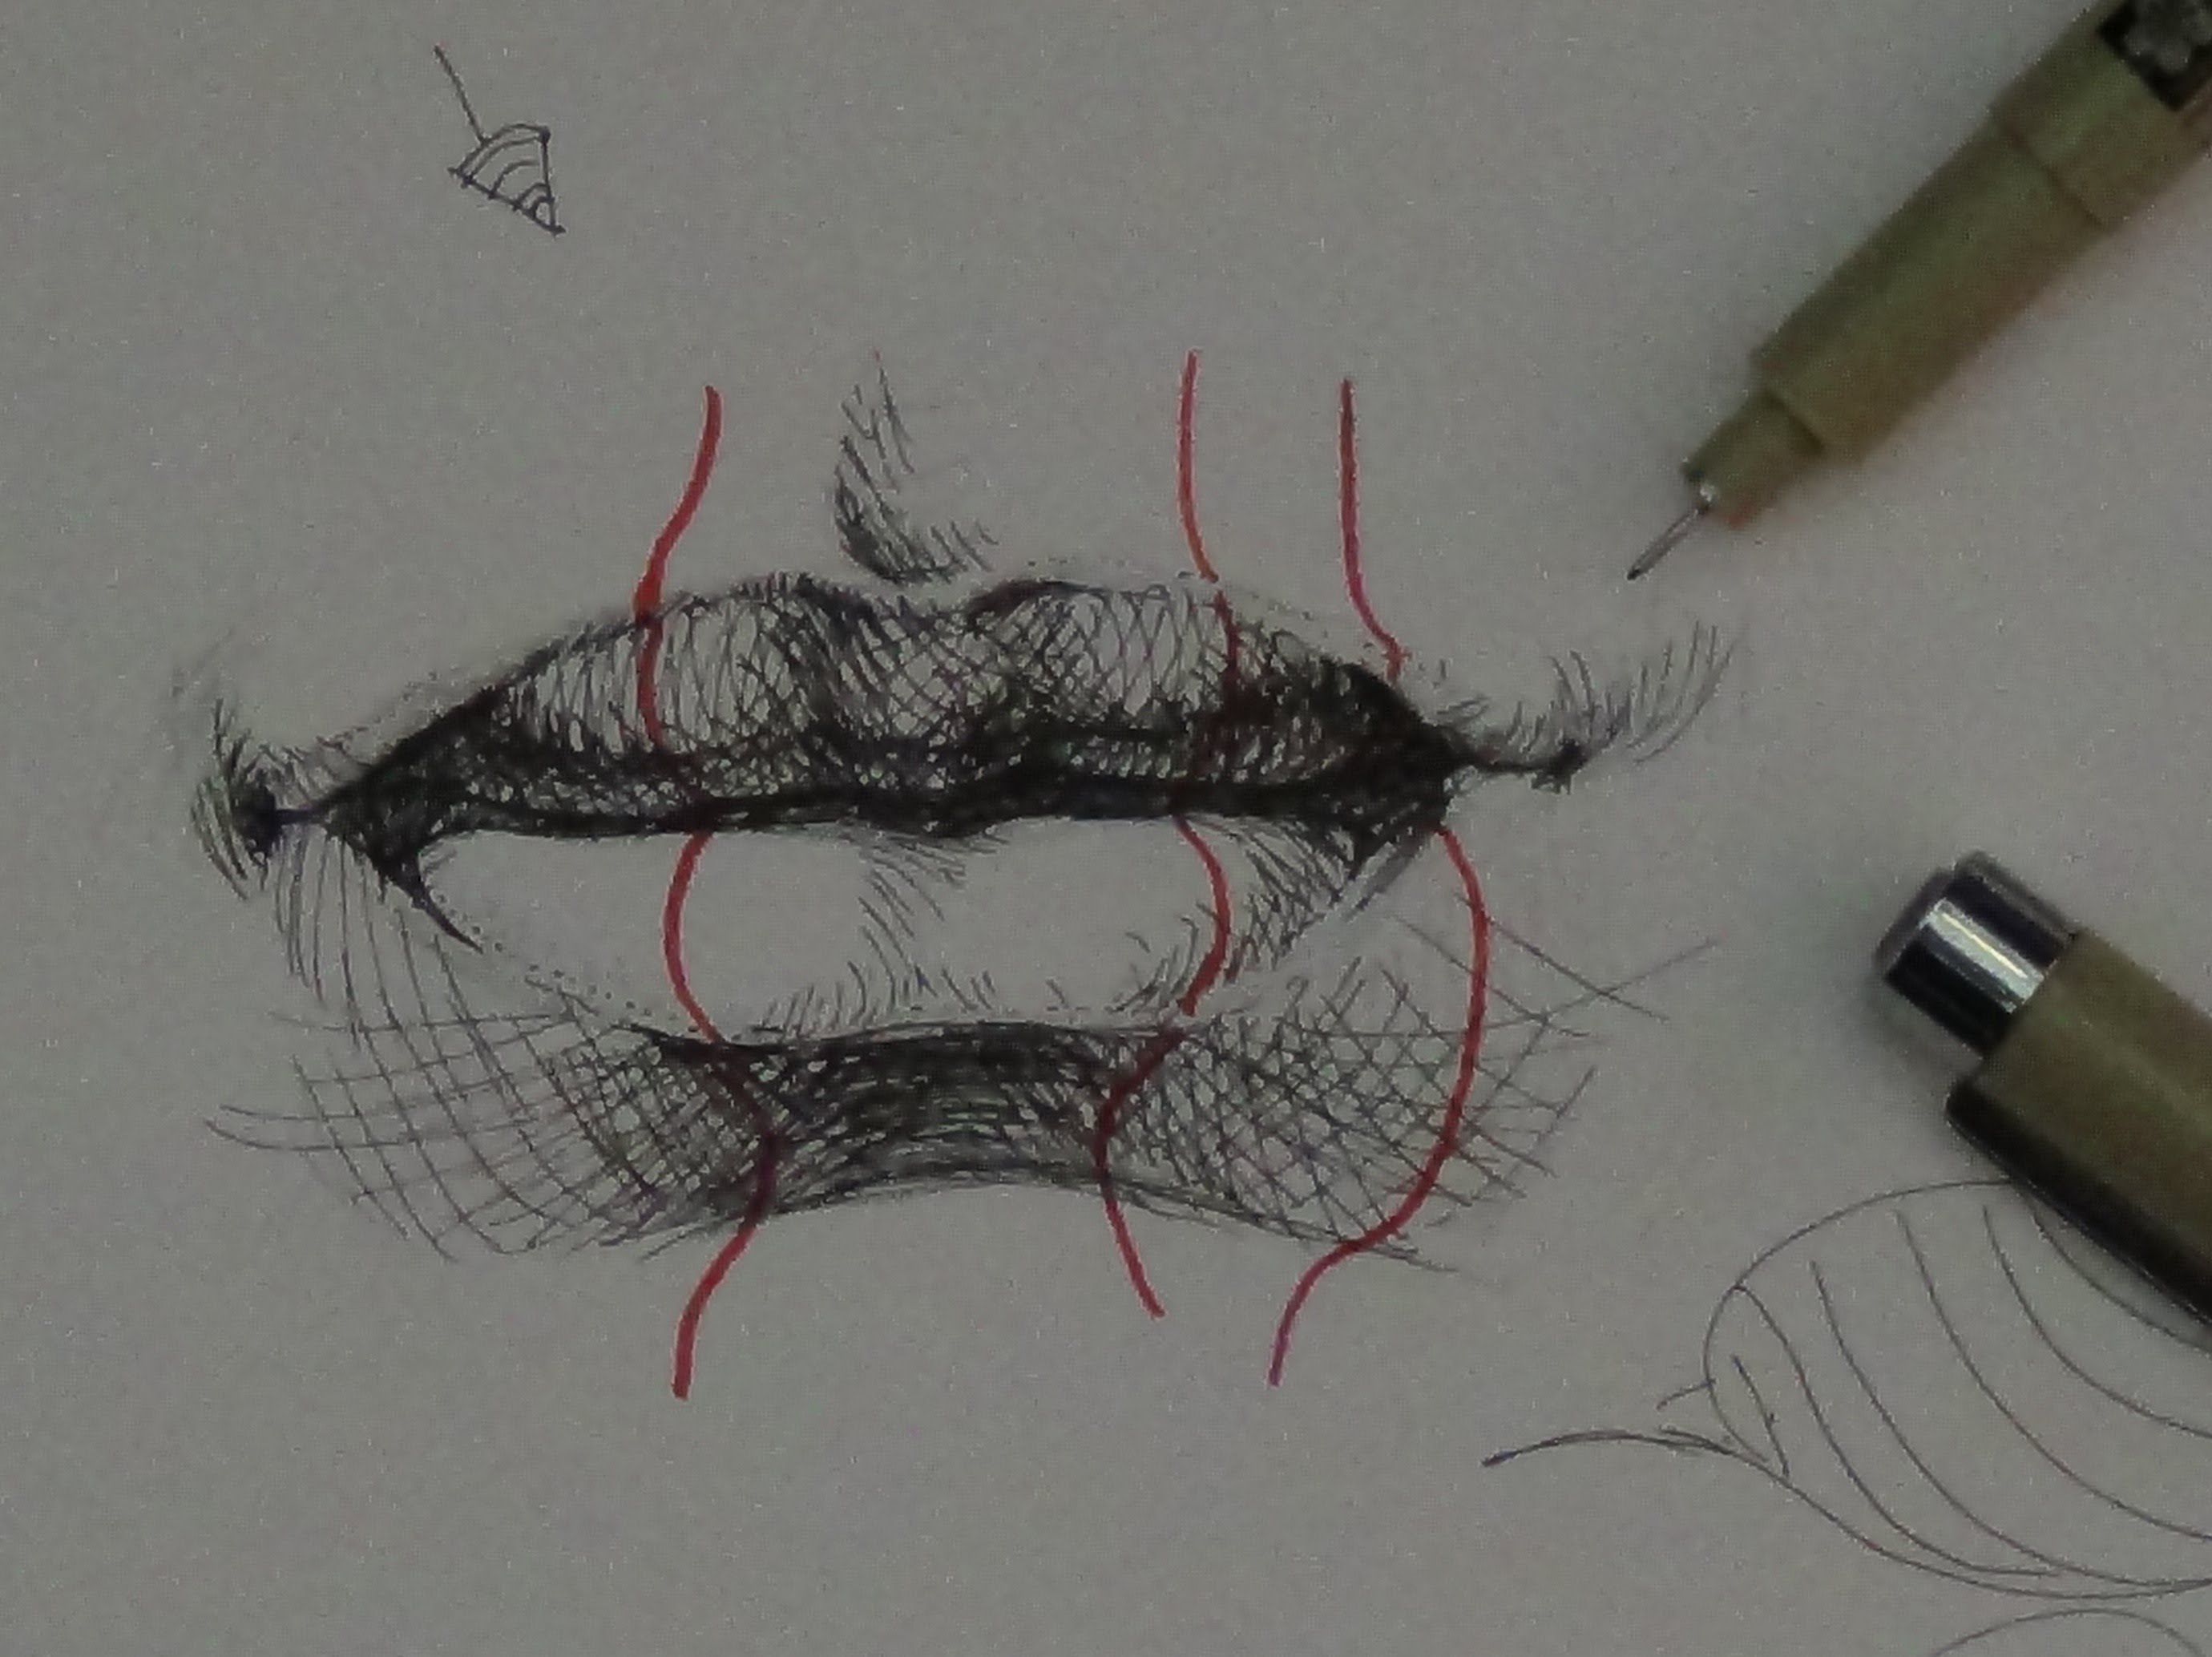 Drawn water droplets pen and ink YouTube Tutorials realistic to draw